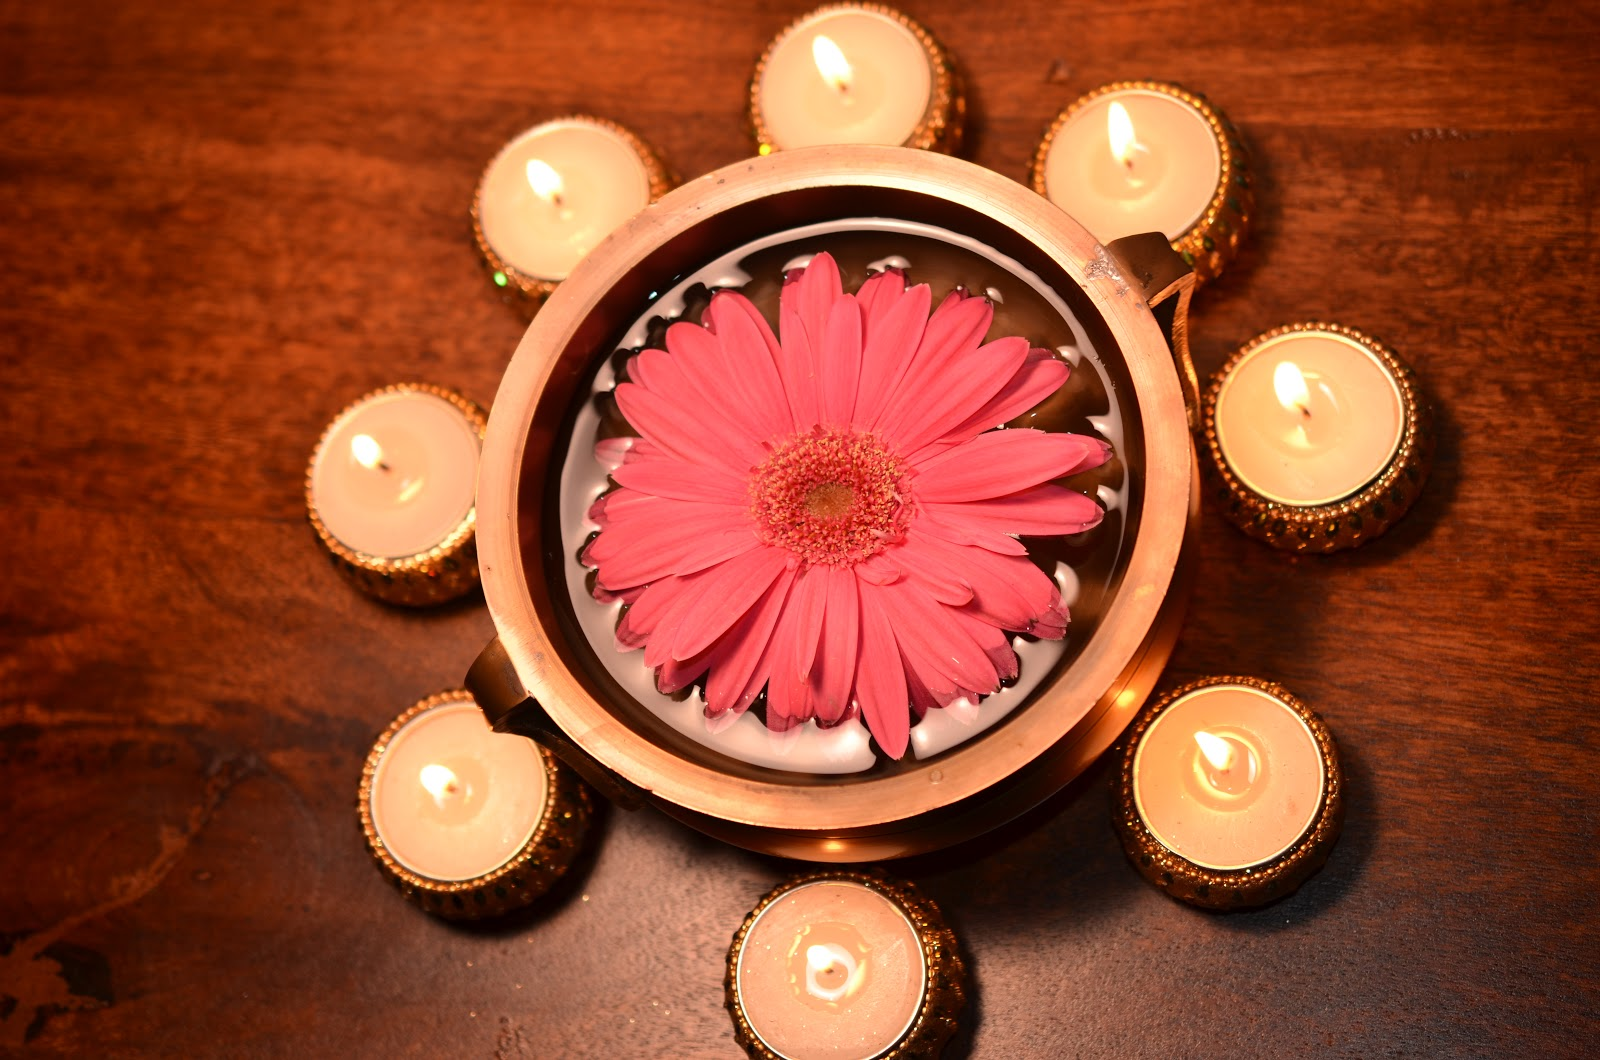 aalayam colors cuisines and cultures inspired diwali another diwali depiction from my home brass urli from overstock pic by uj